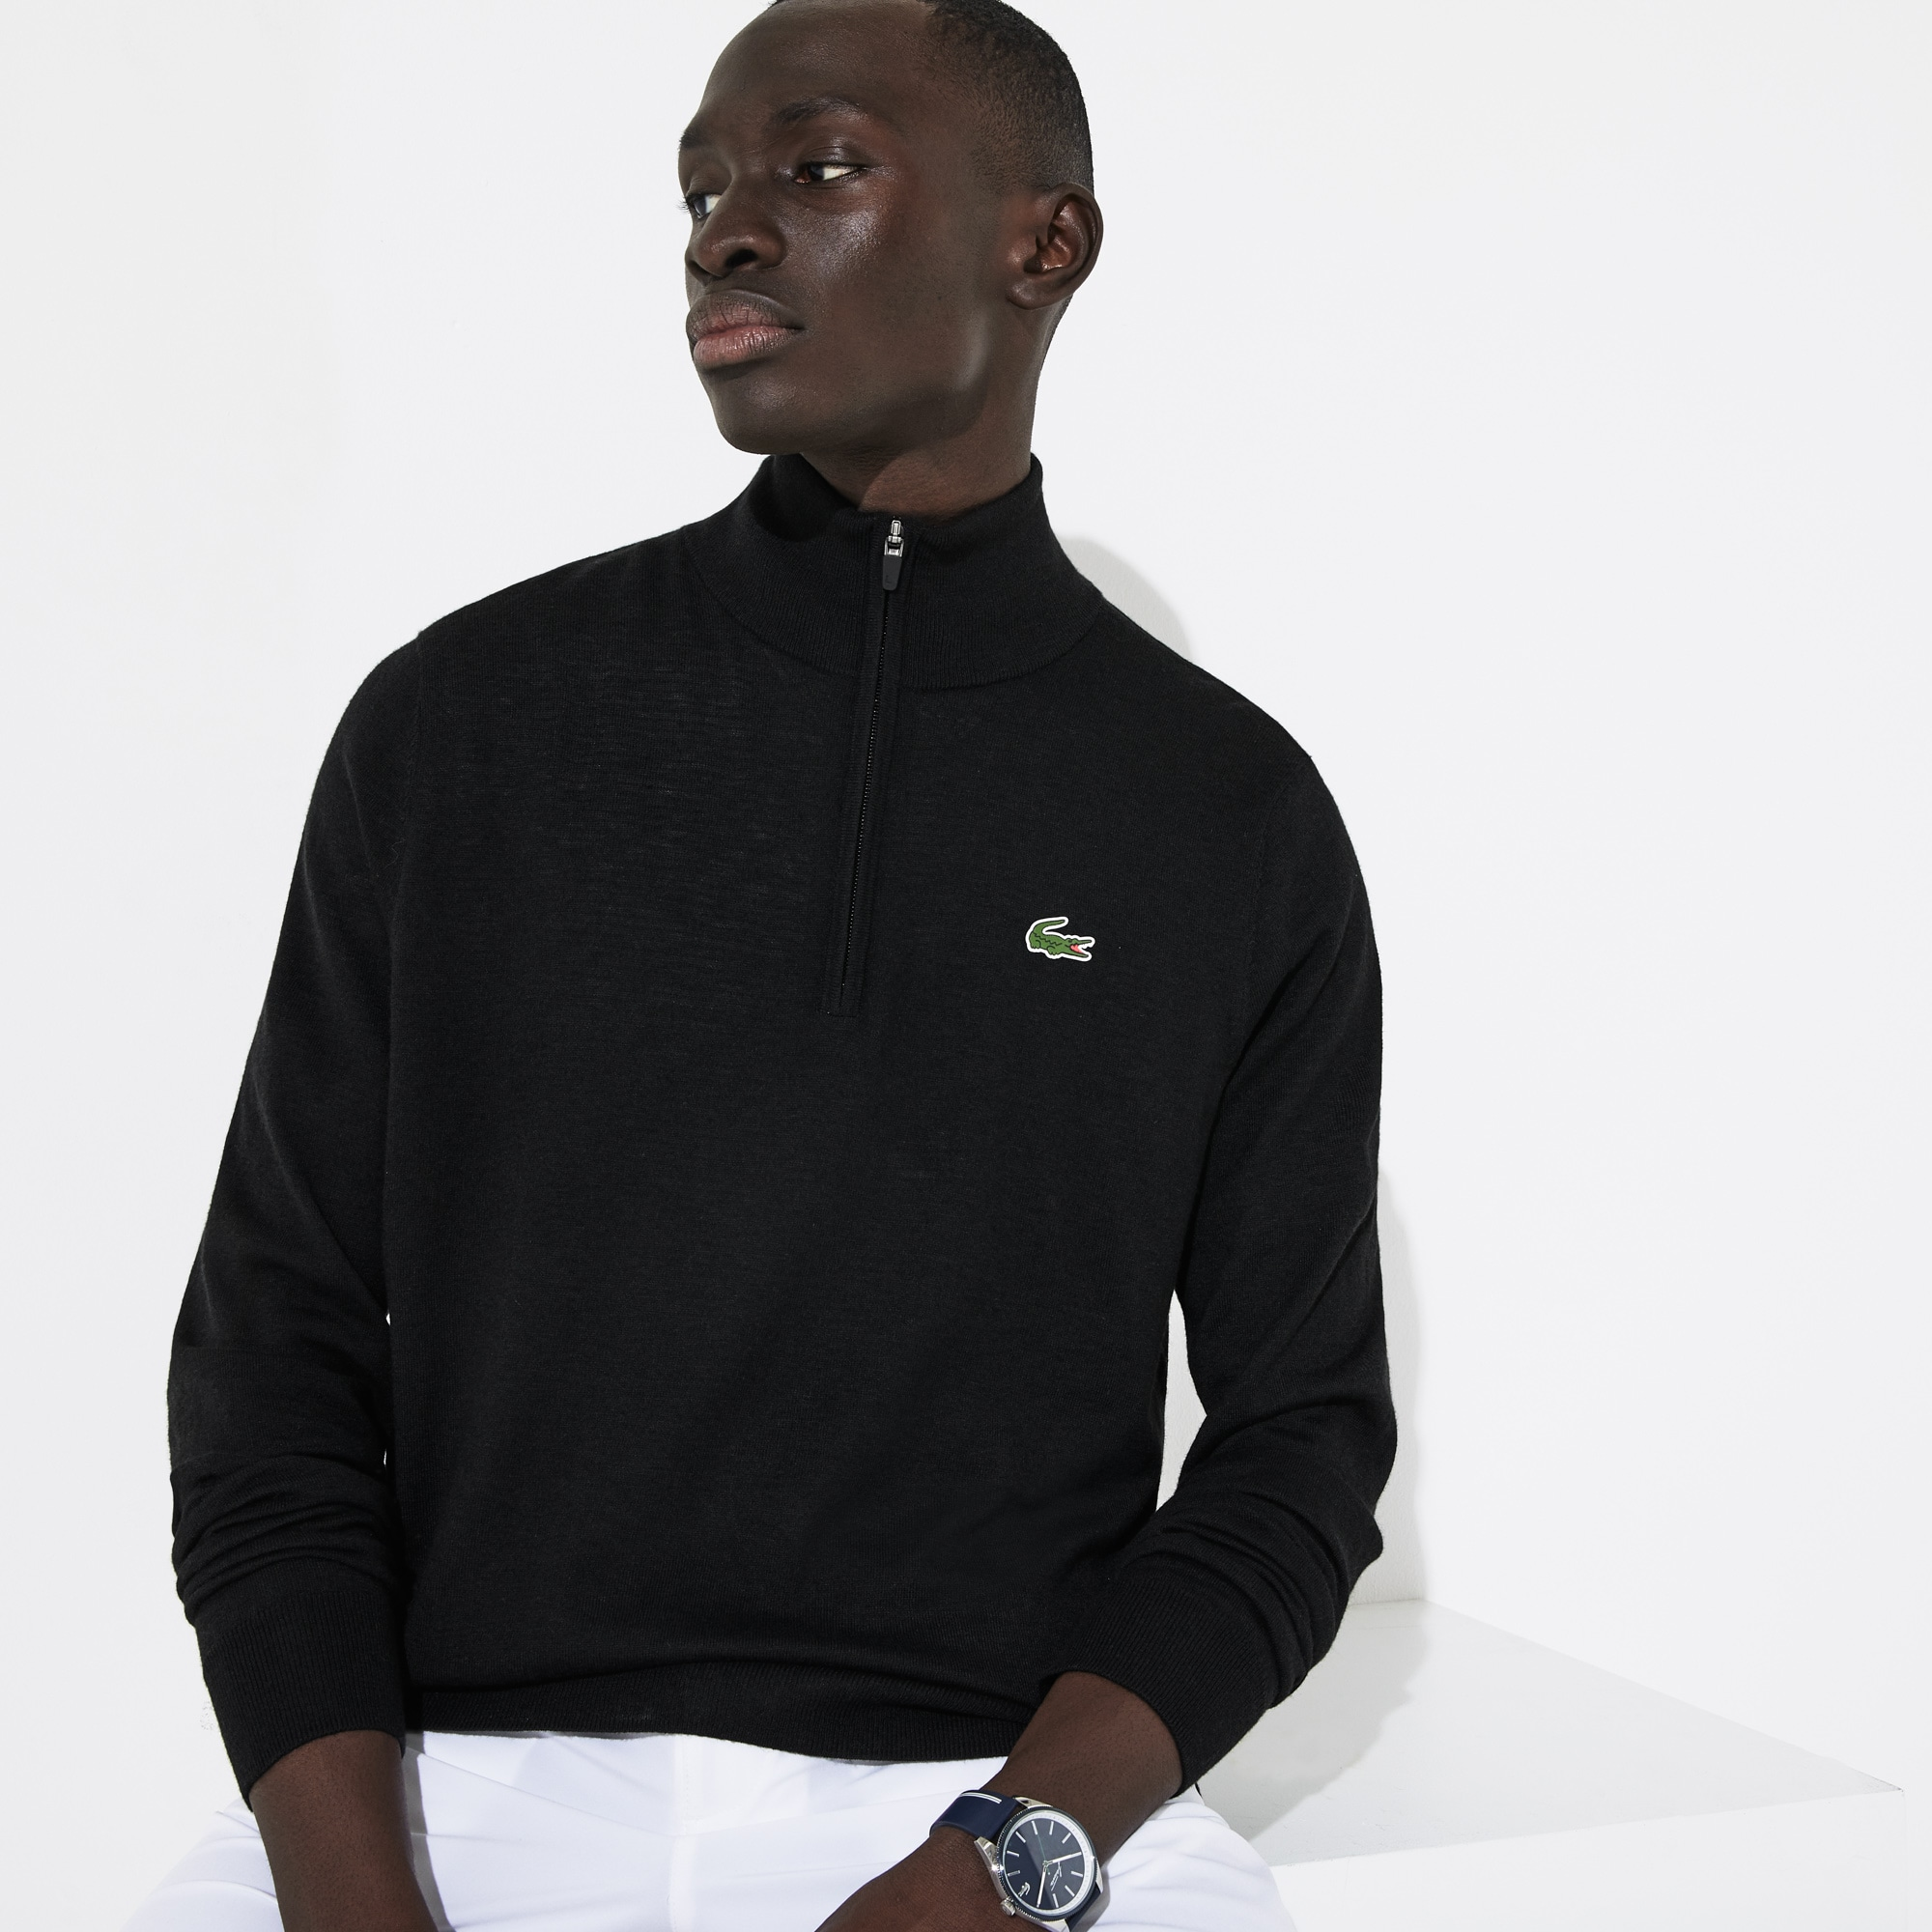 Men's Lacoste SPORT Solid Breathable Knit Zip Collar Golf Sweater